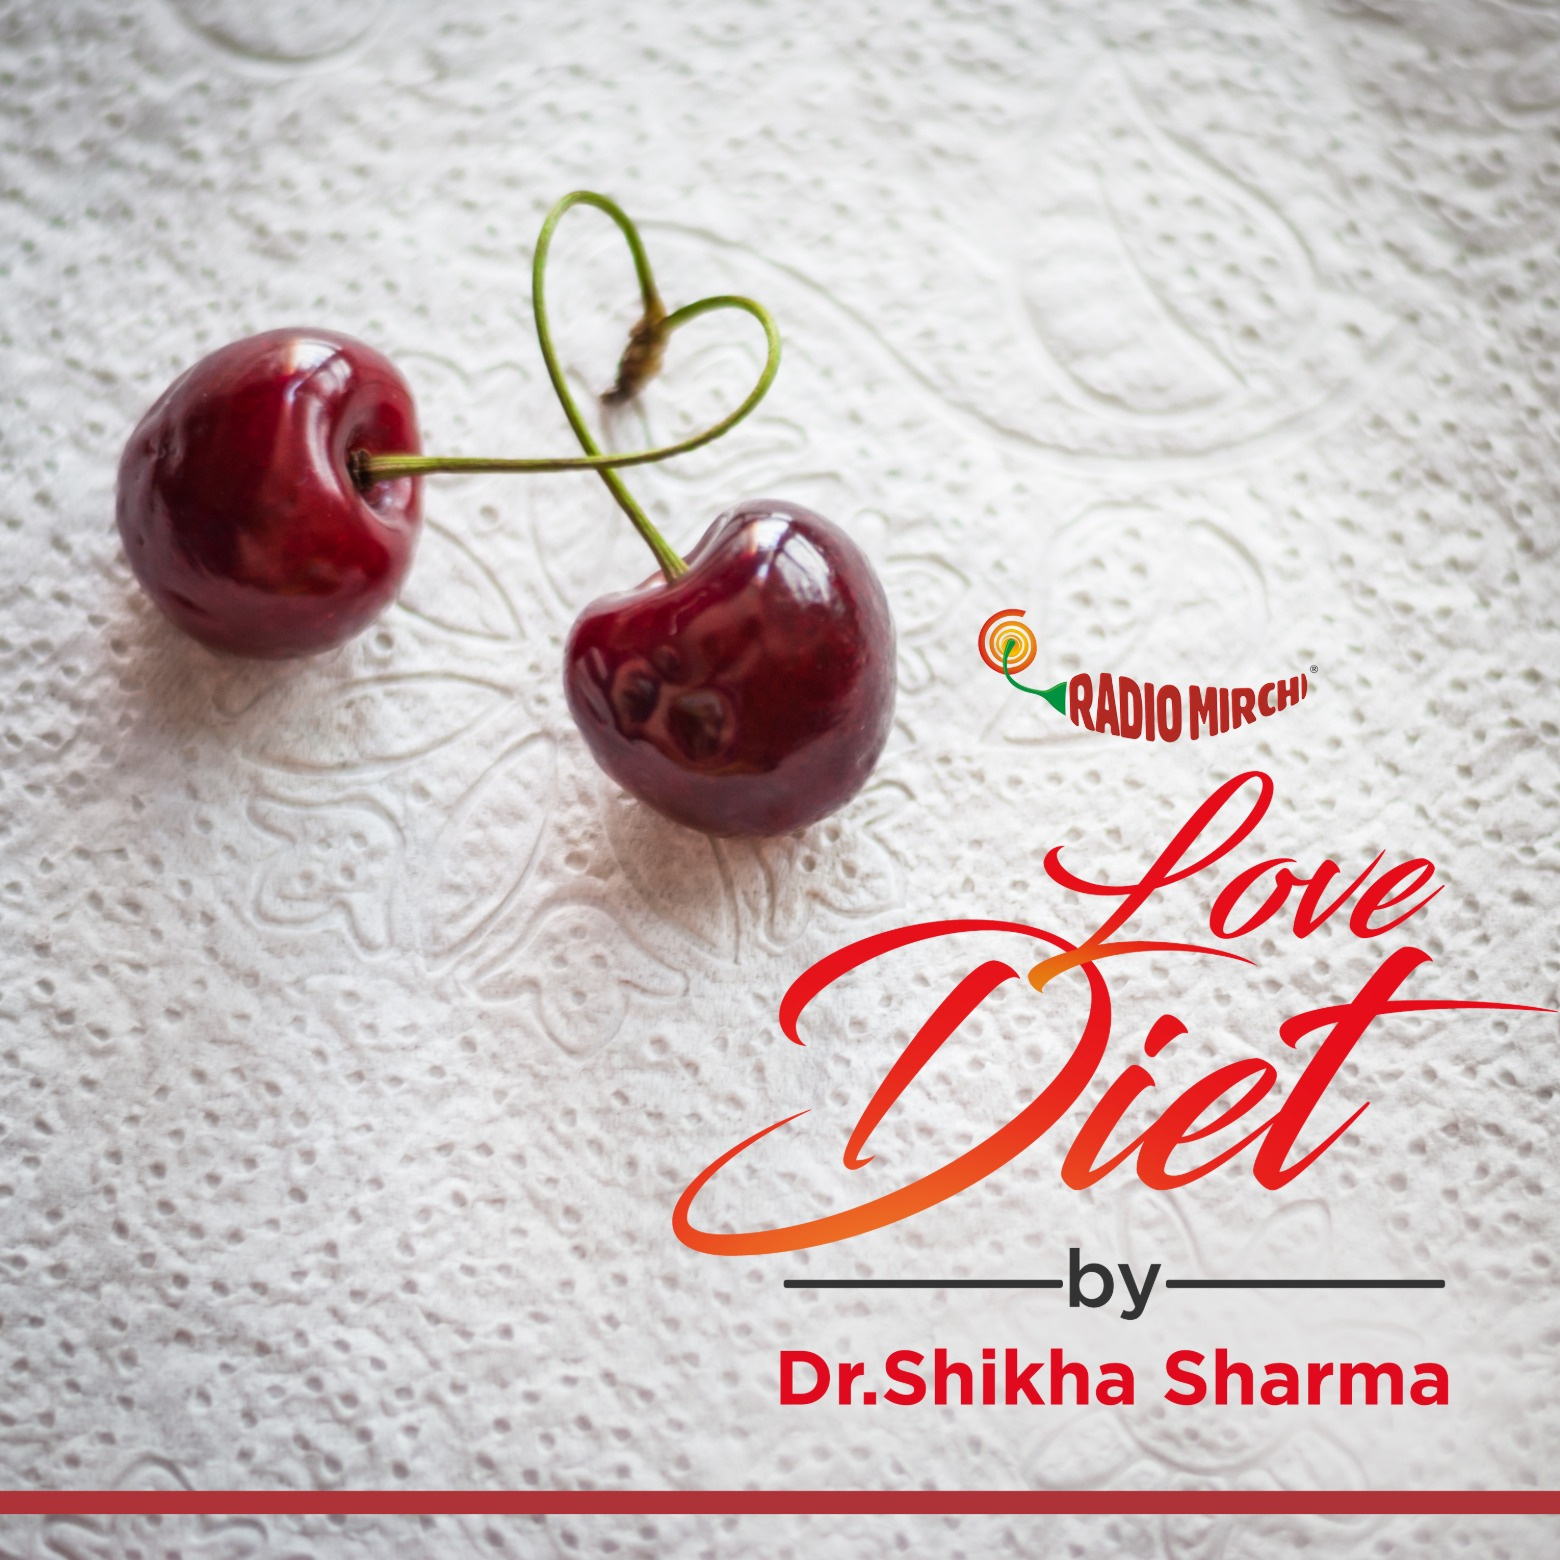 Love Diet by Dr. Shikha Sharma | Radio Mirchi